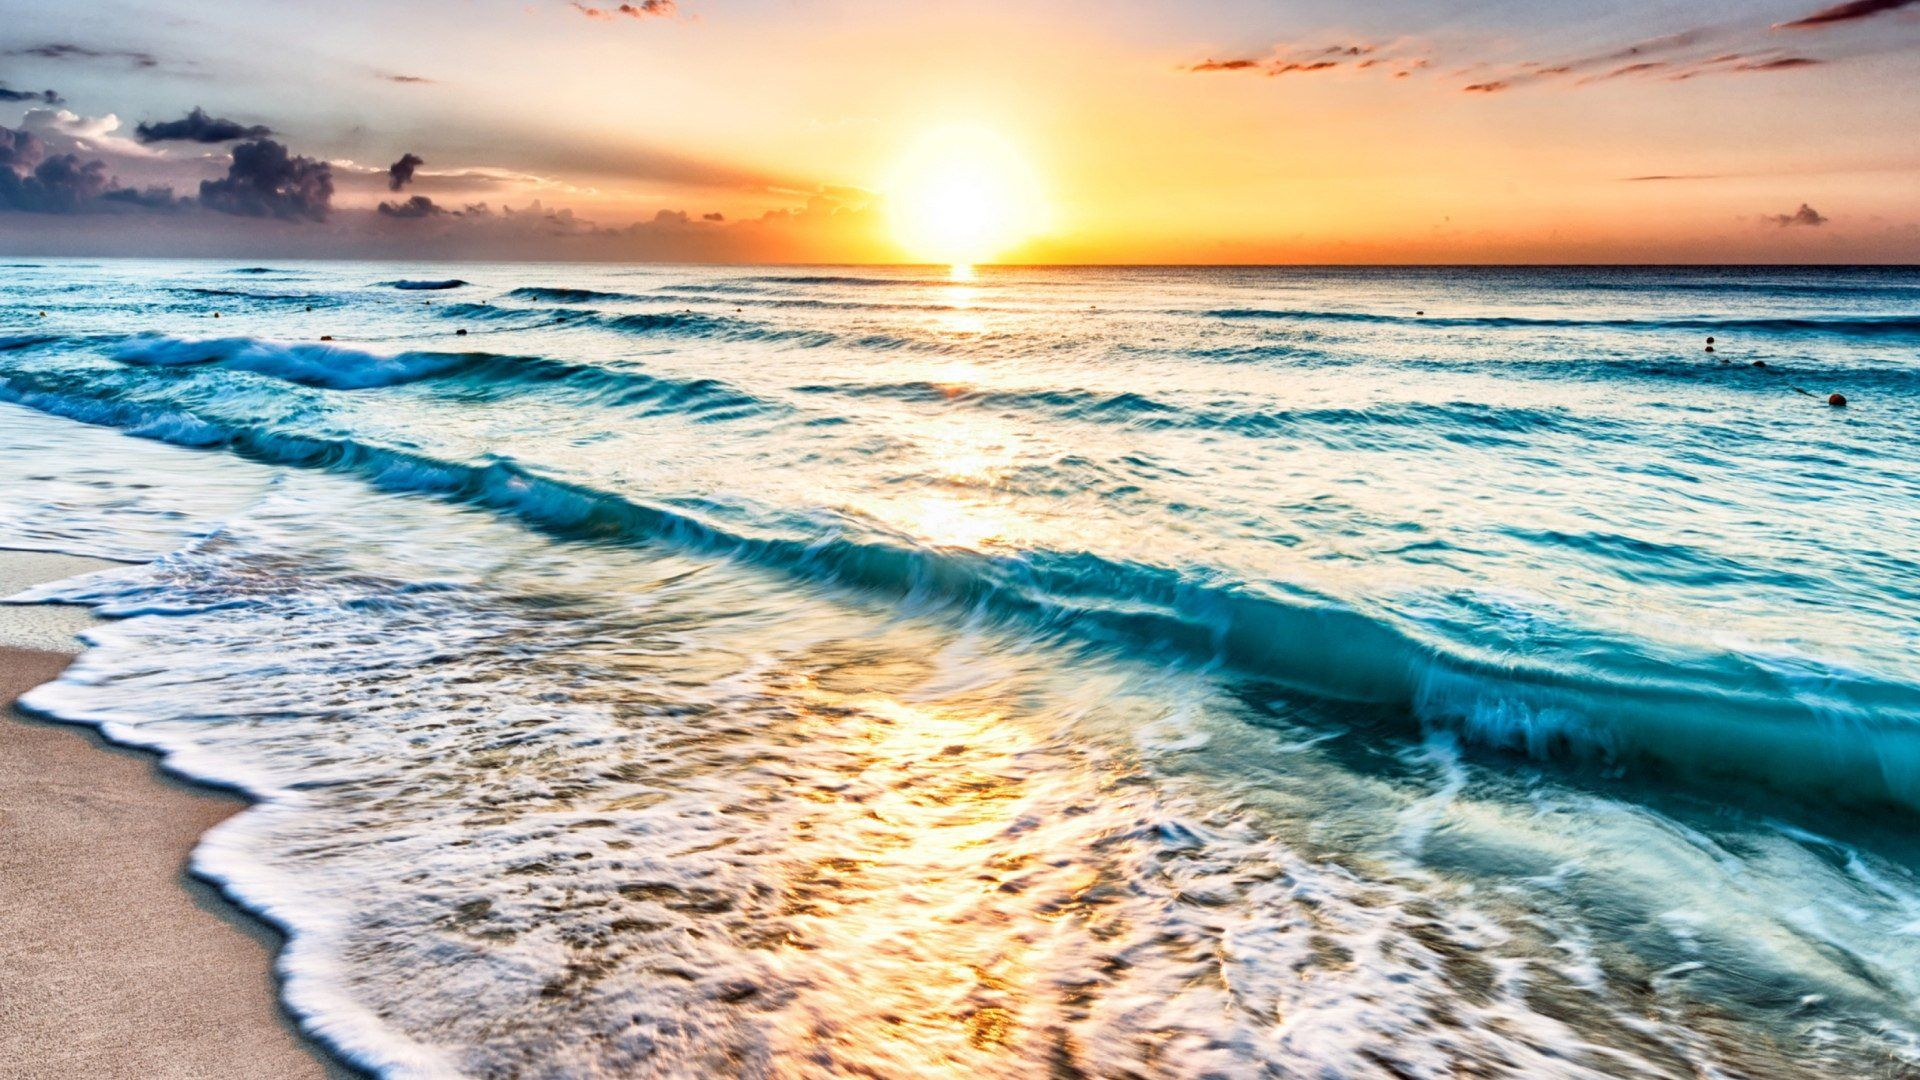 Ocean Sunset Wallpaper and Background